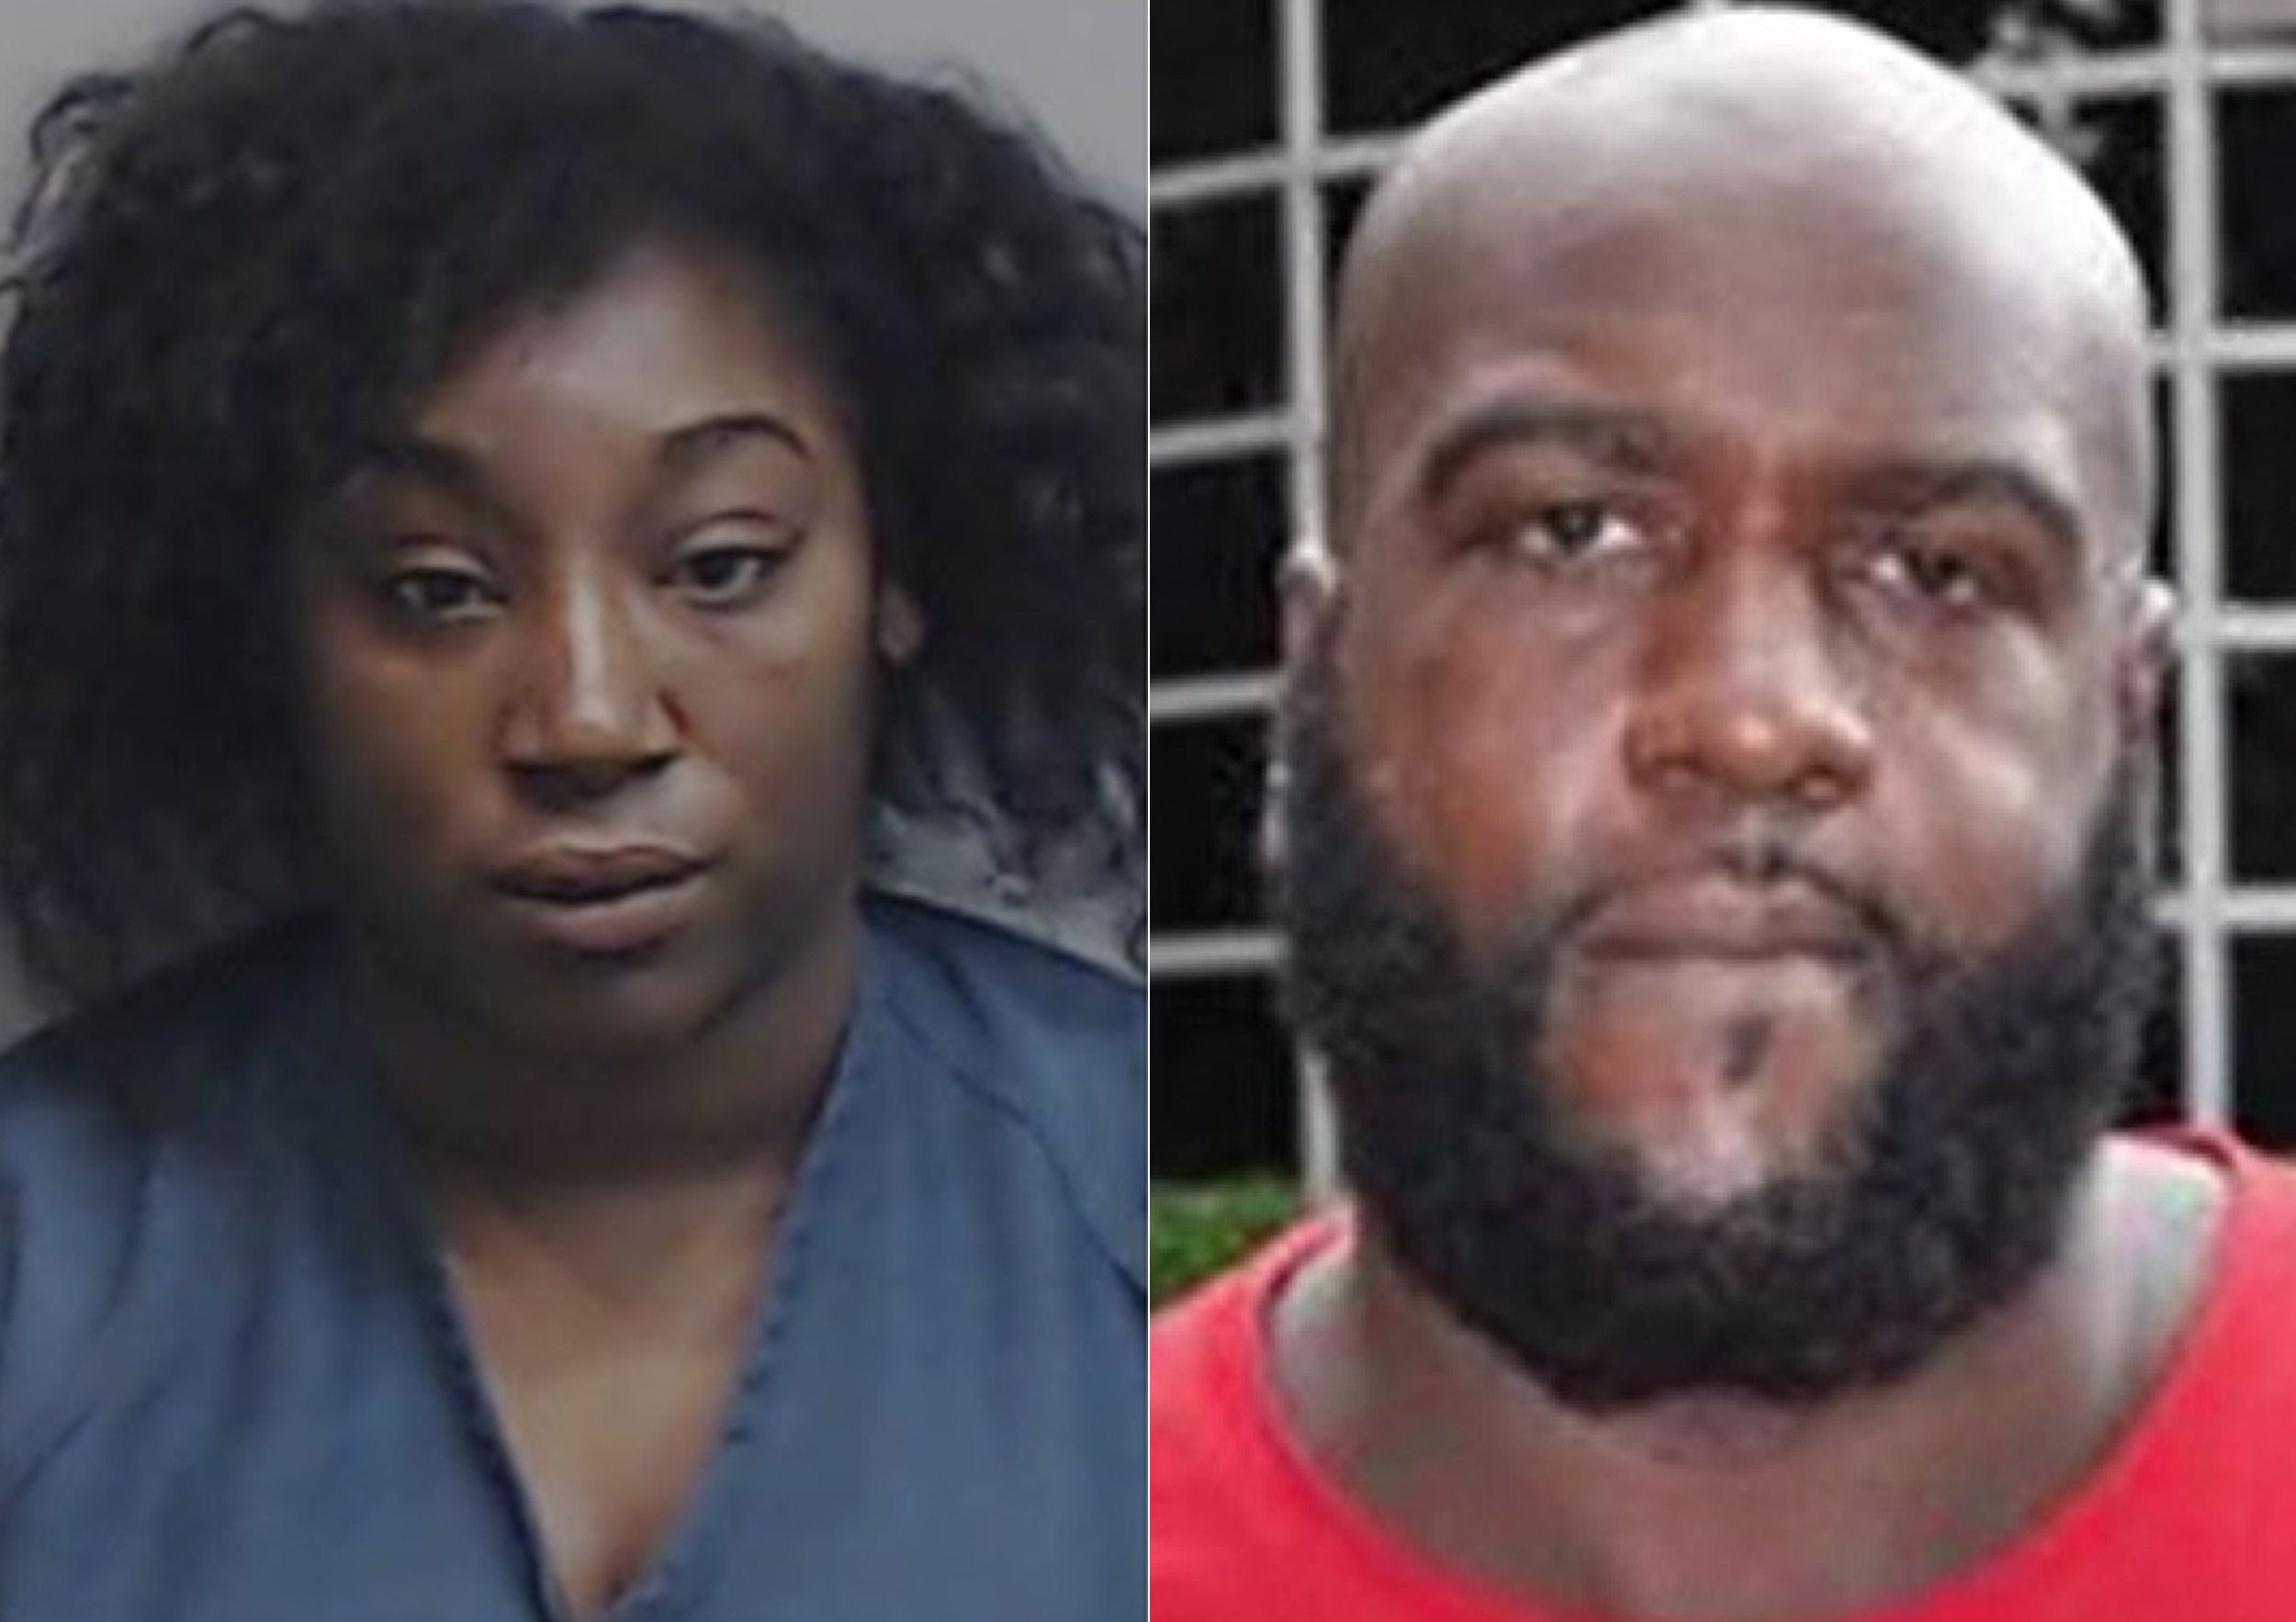 Dominique Berry and Randy Schenck were photographed after their arrests in Fulton County, Georgia, on charges unrelated to th